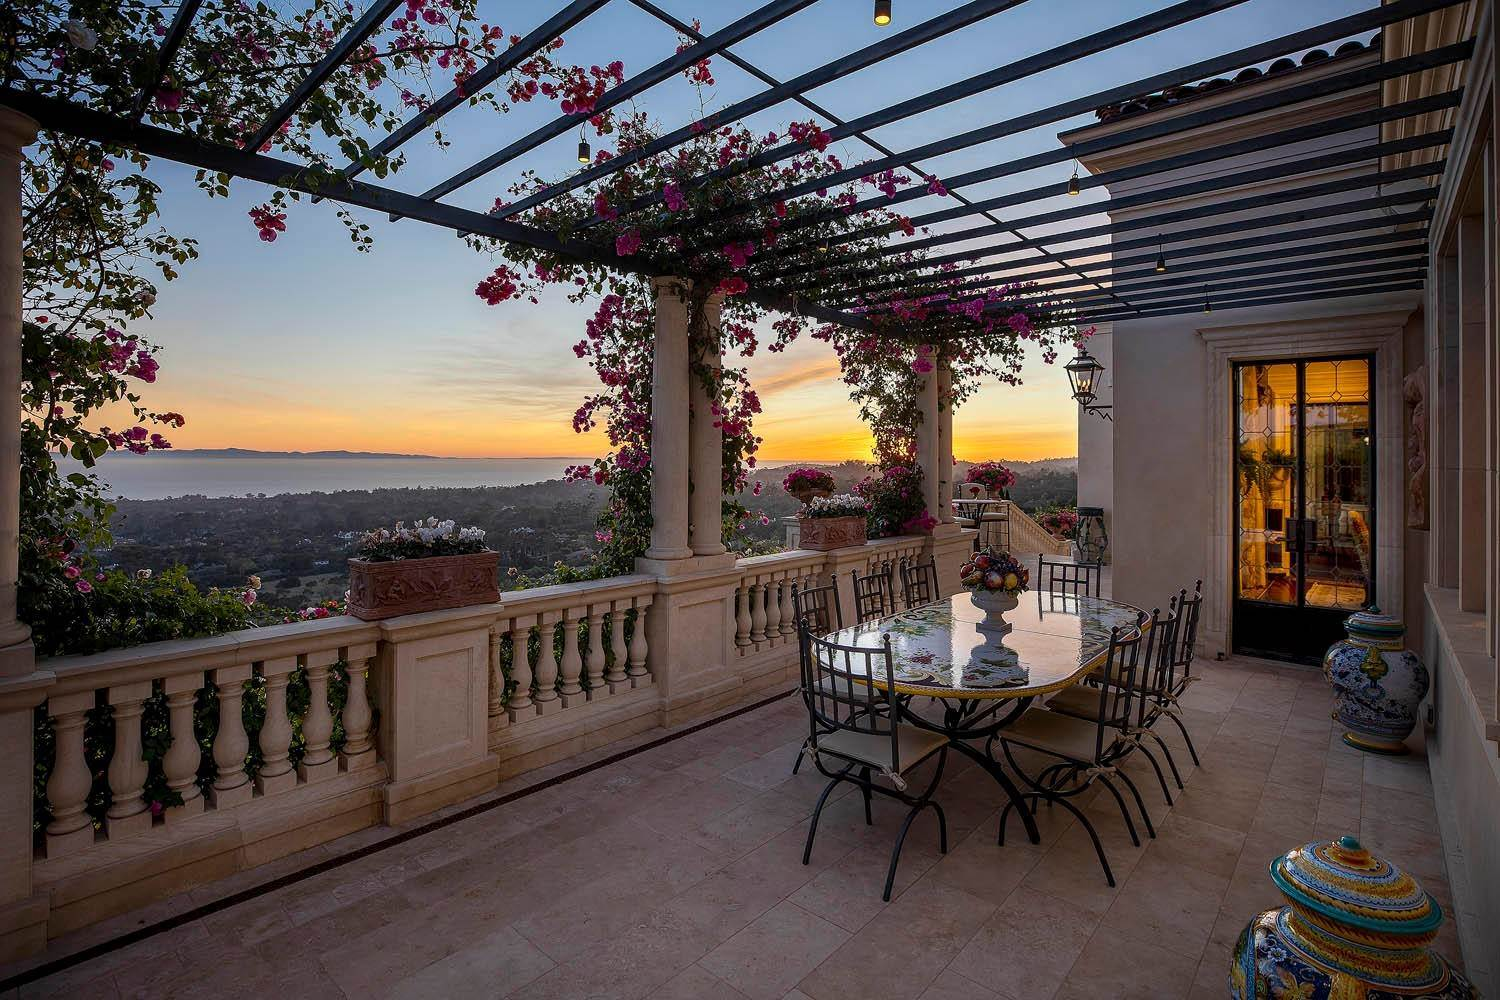 25. Estate for Sale at 1395 Oak Creek Canyon Road Montecito, California 93108 United States